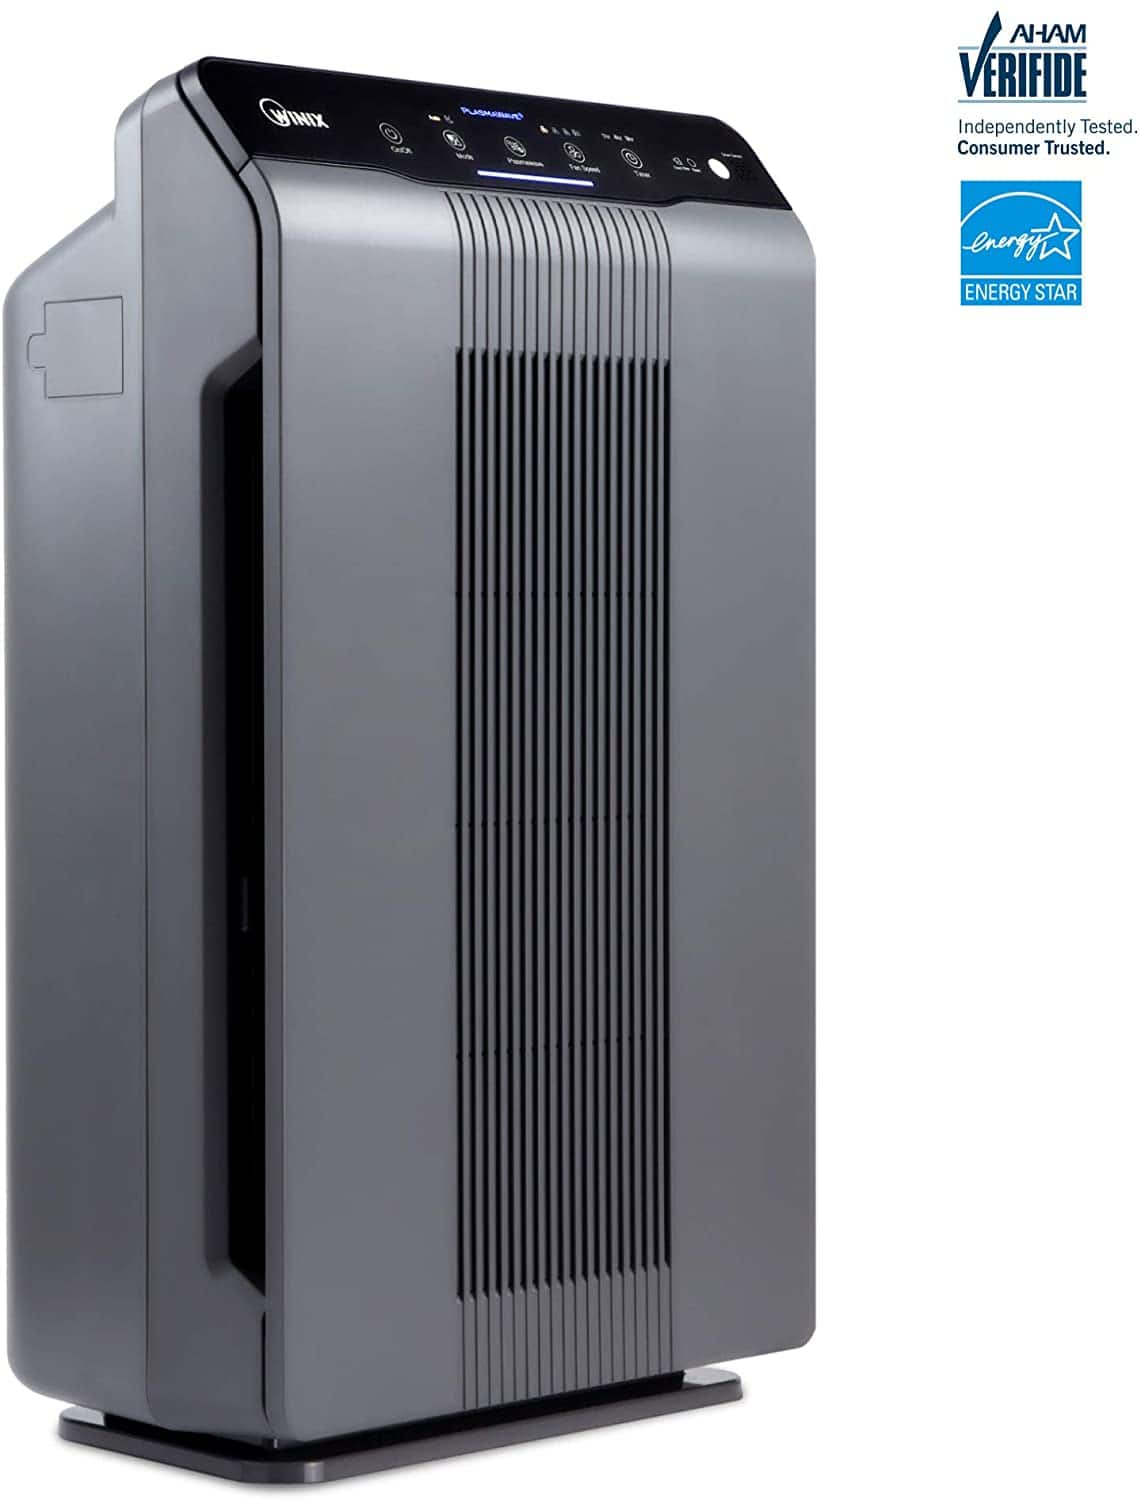 Winix 5300-2 Air Purifier with True HEPA, PlasmaWave and Odor Reducing Carbon Filter $129.85